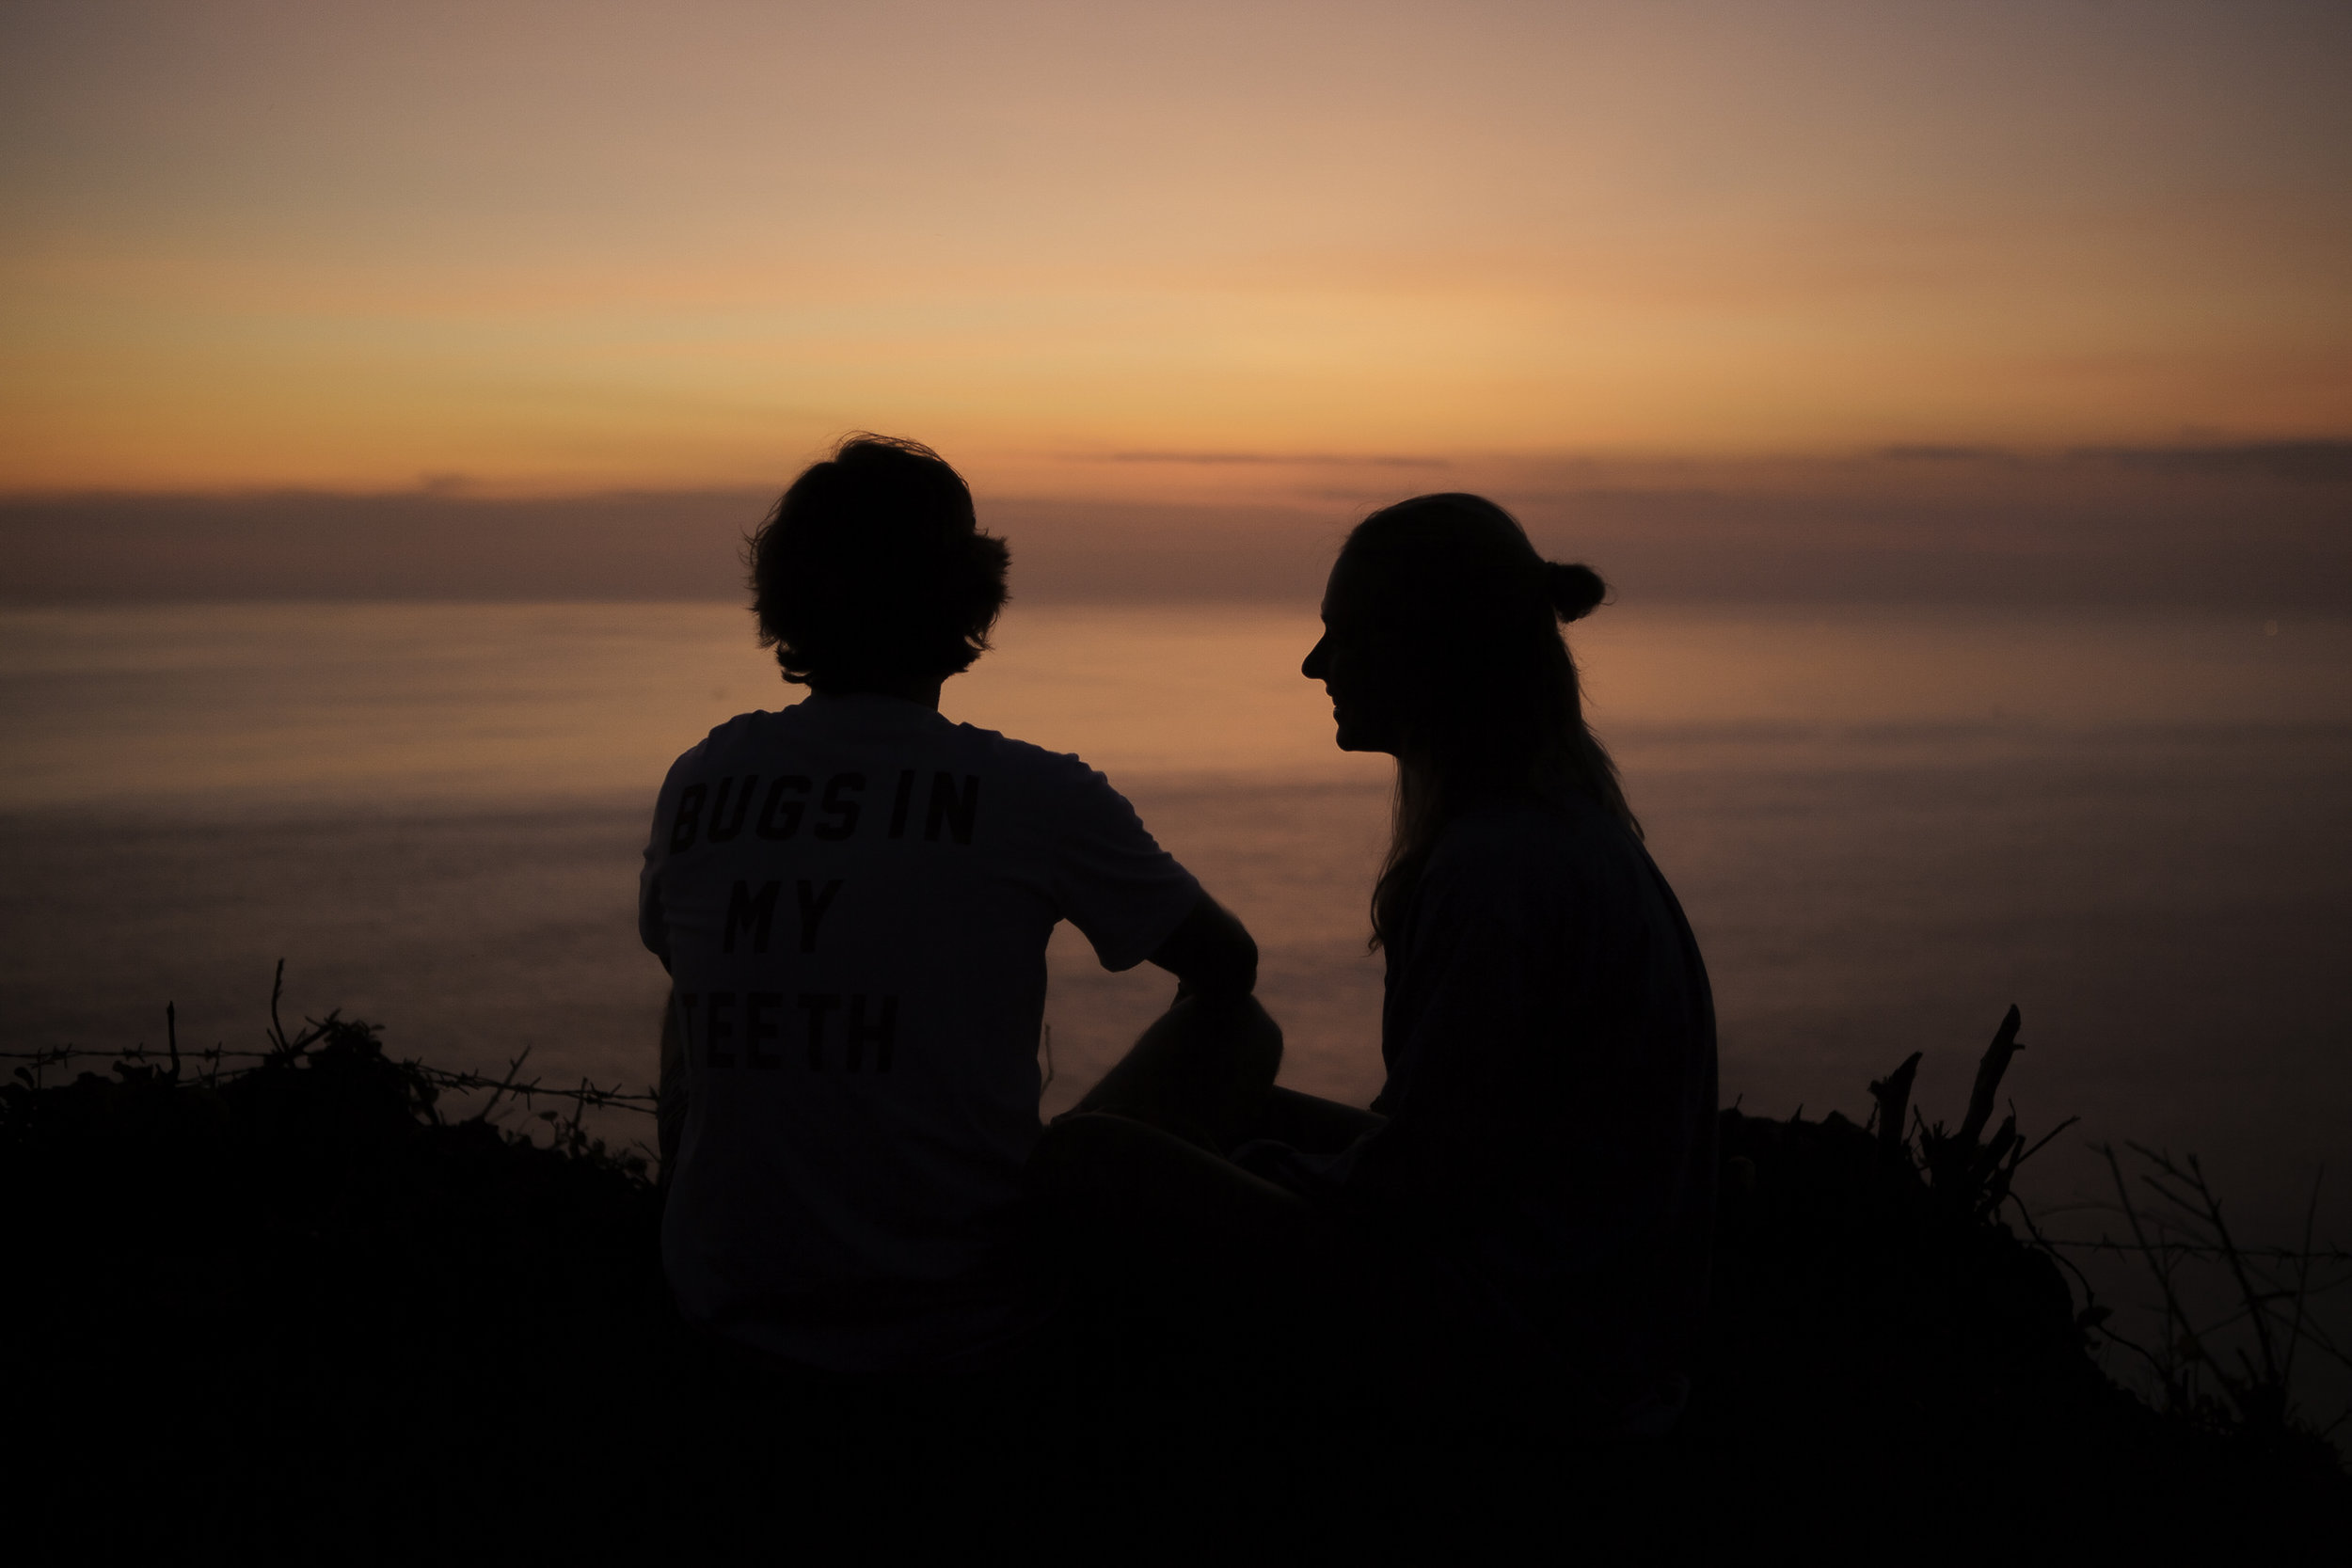 The Couple with Sunset-0683.jpg